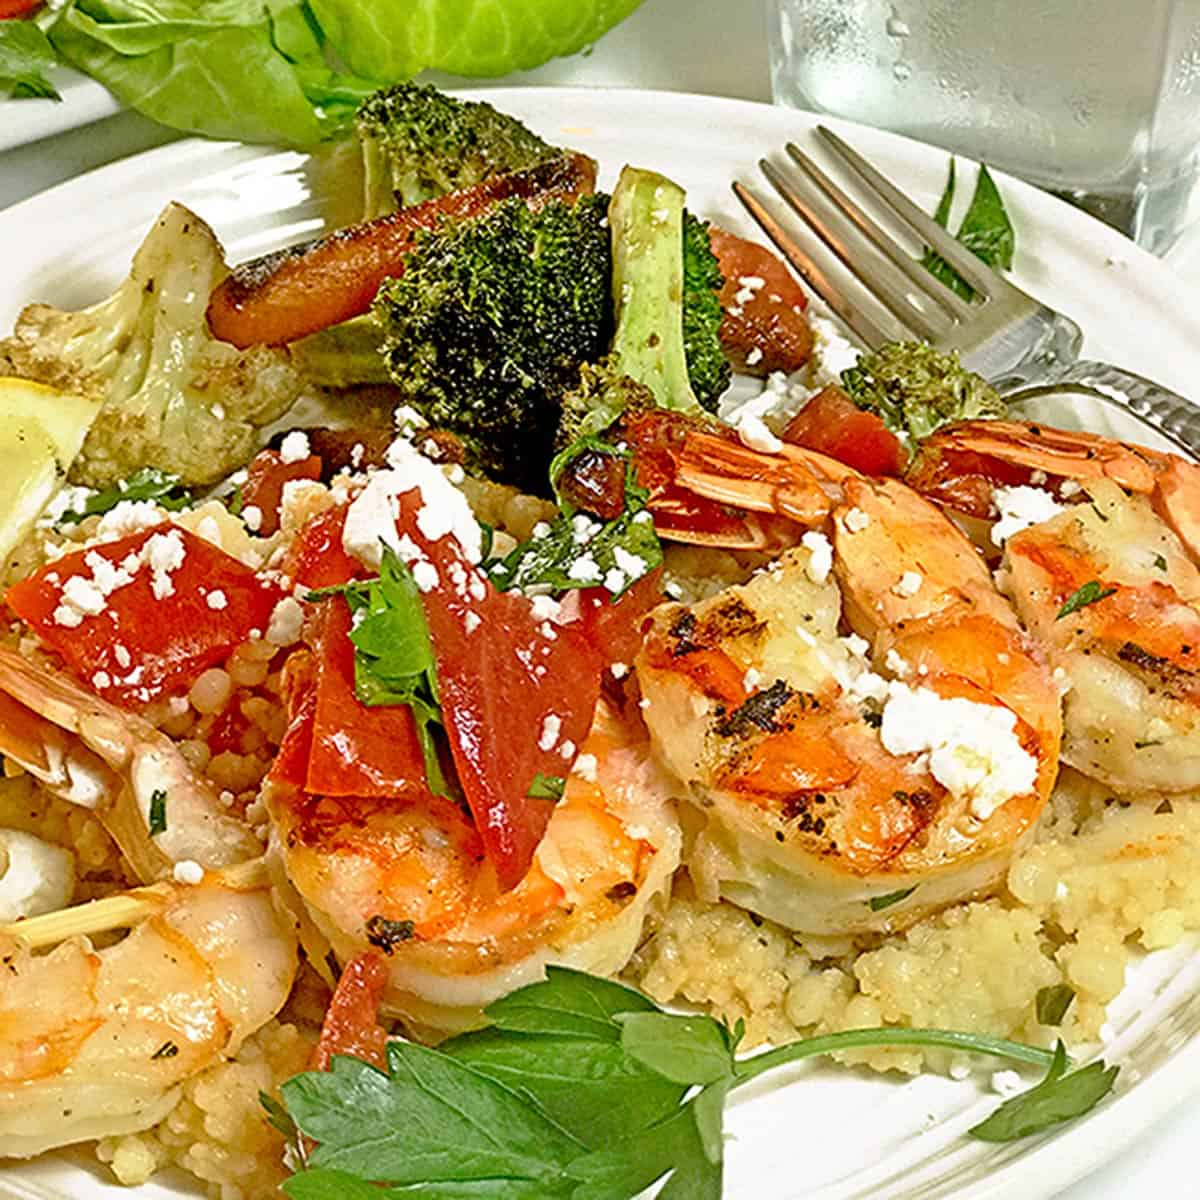 A plate of griled shrimp over couscous.